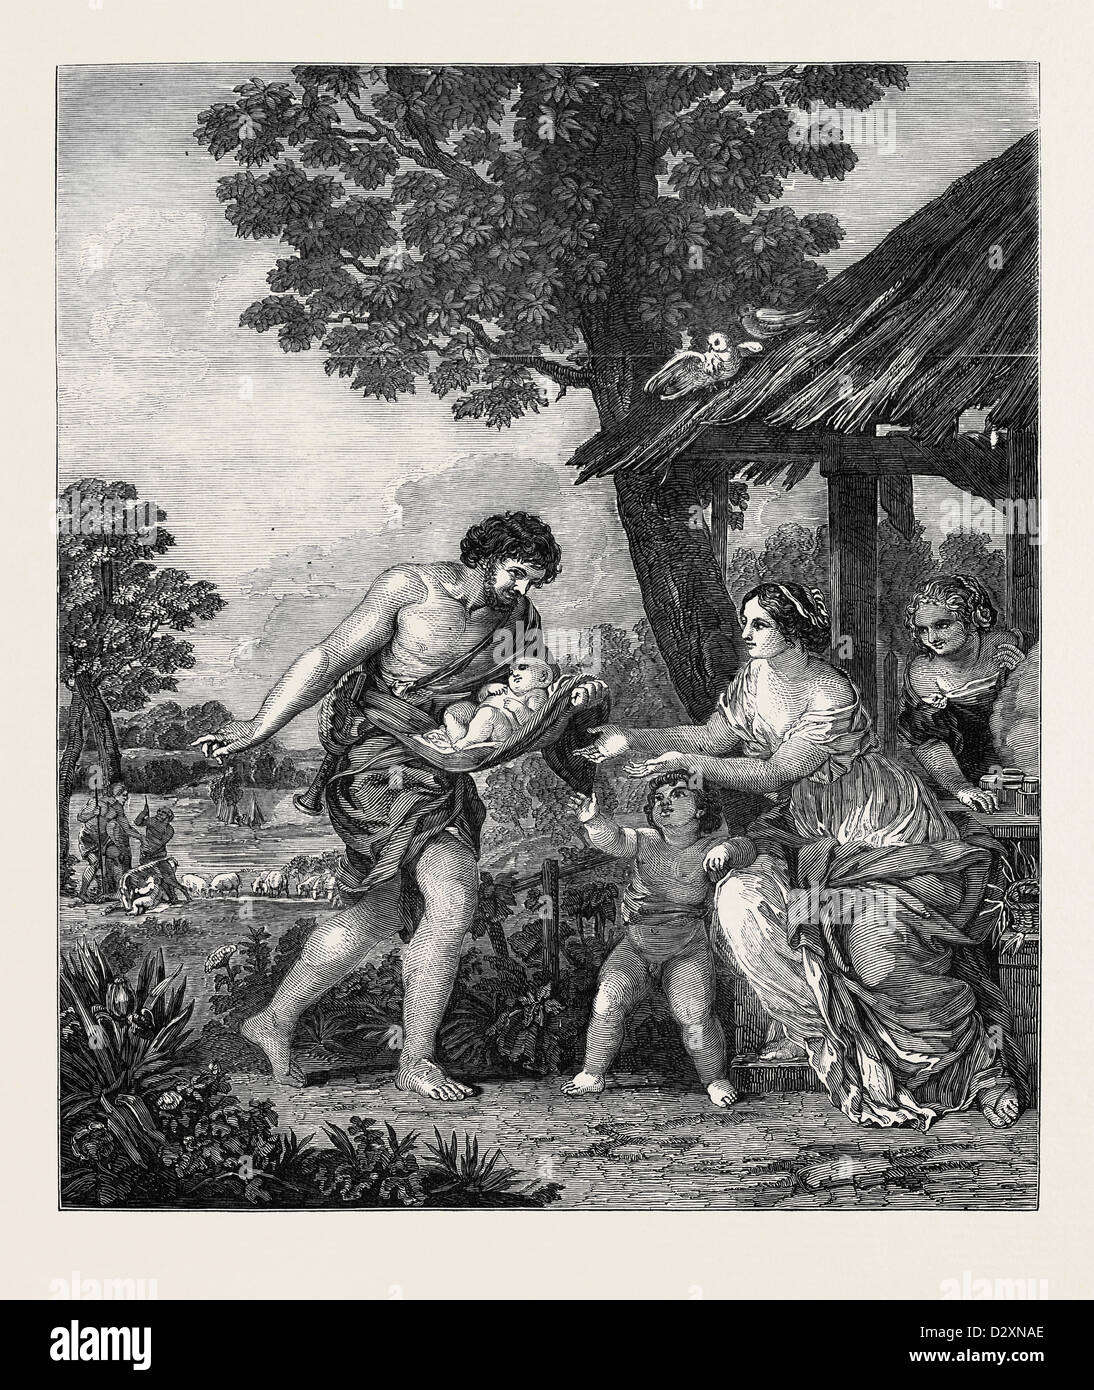 THE FINDING OF ROMULUS AND REMUS FROM THE PICTURE BY PIETRO DA CORTONA - Stock Image